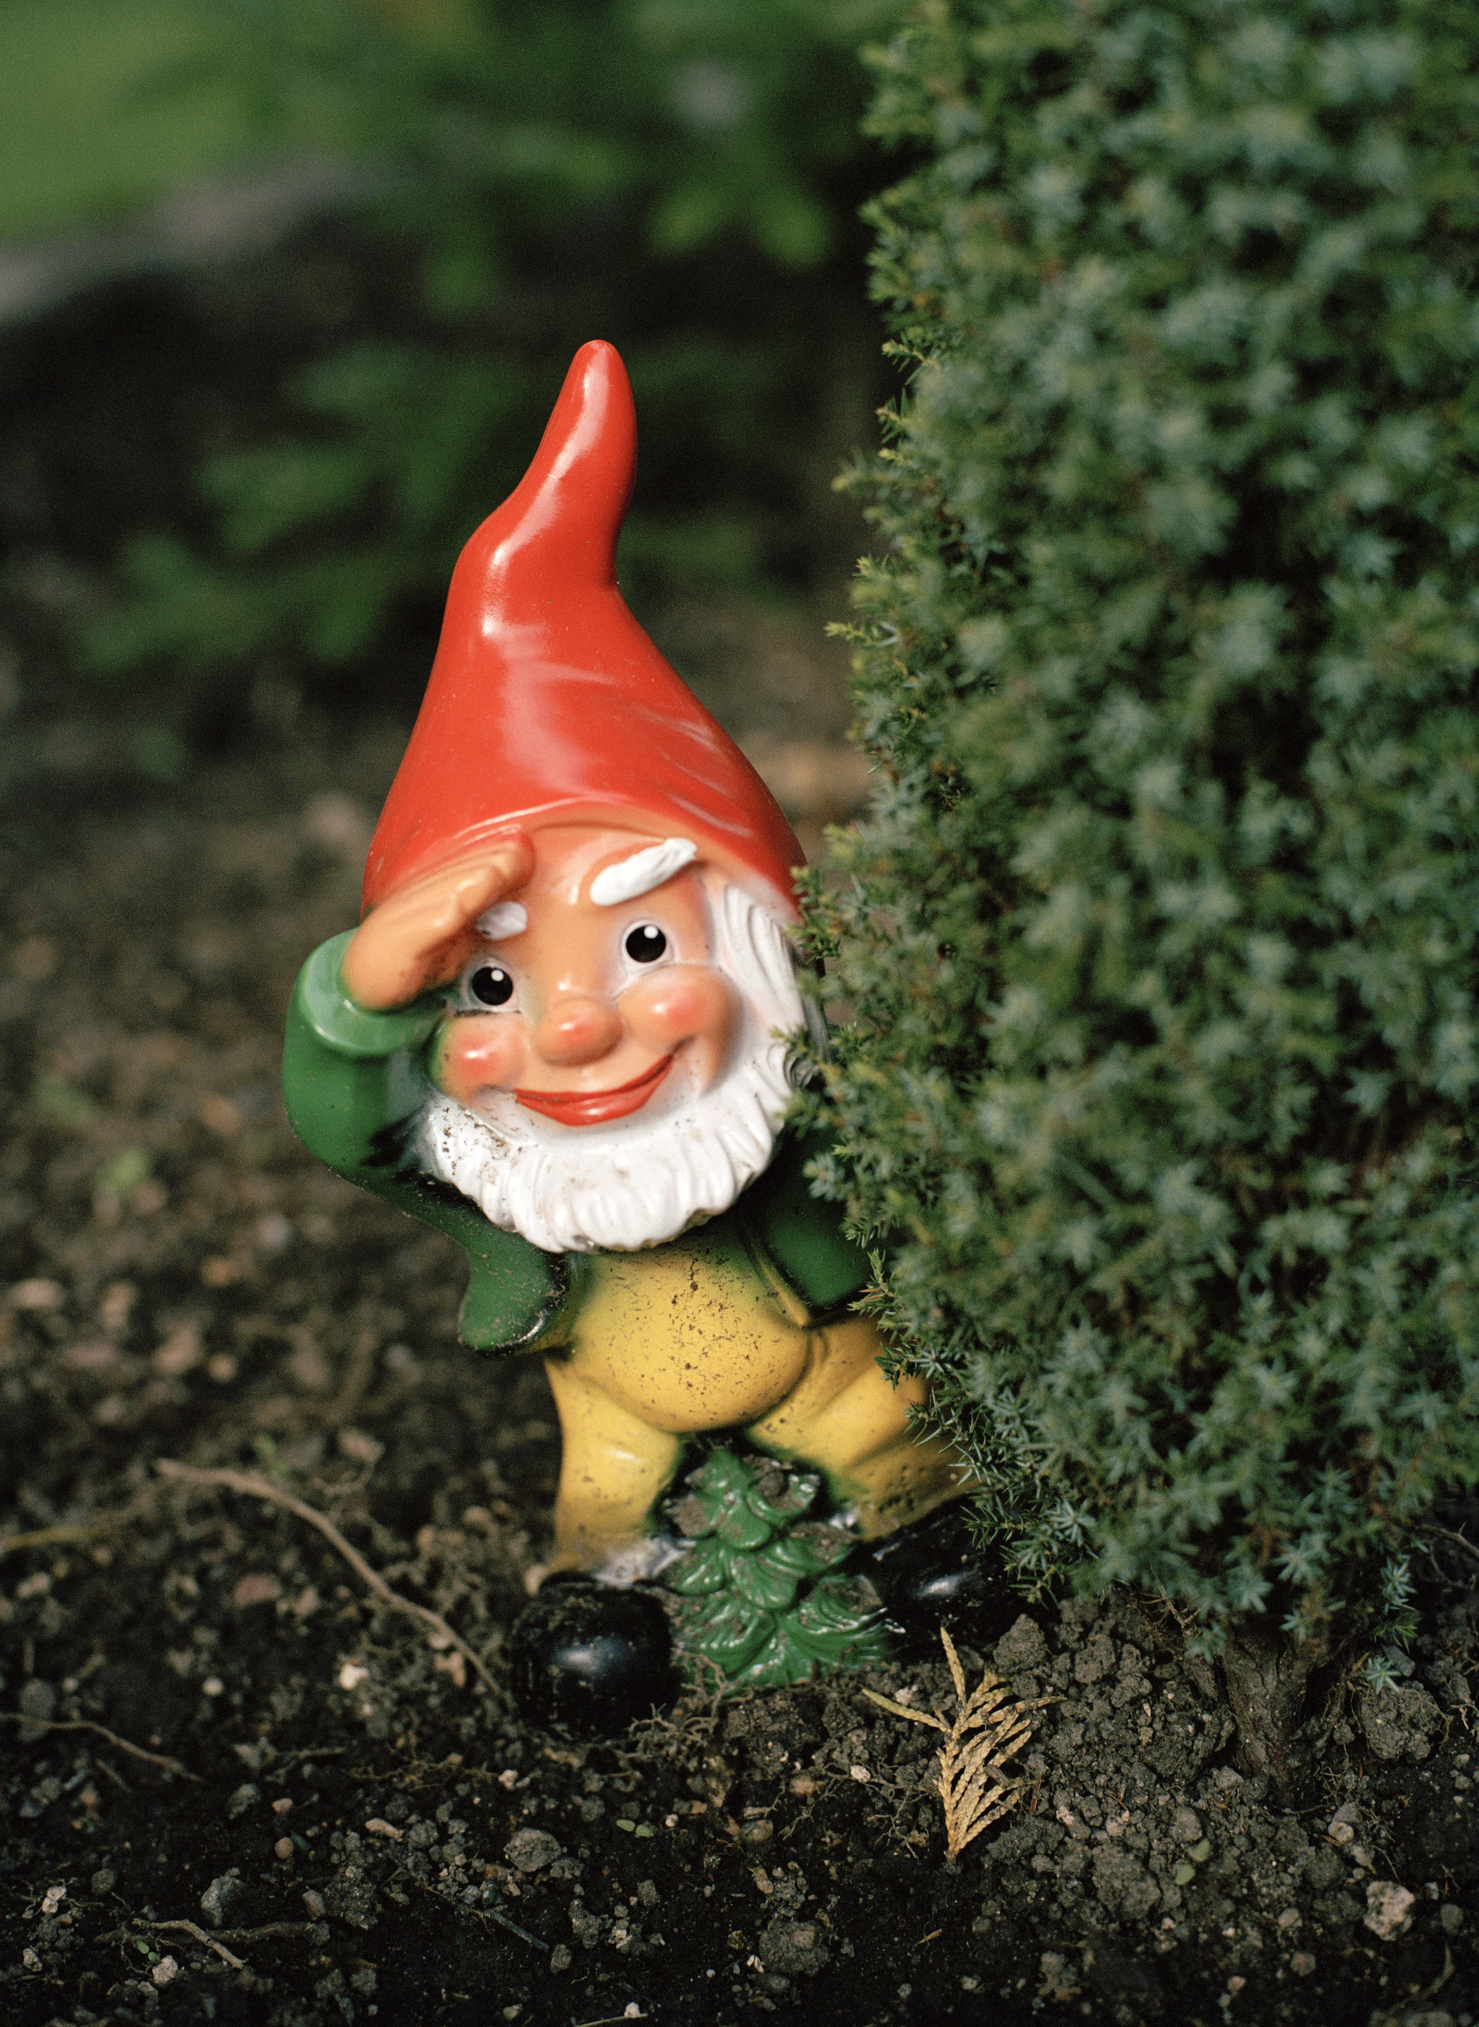 Www Garden Gonme: Sales Of Garden Gnomes Rose By 42% This Year, Reveals EBay